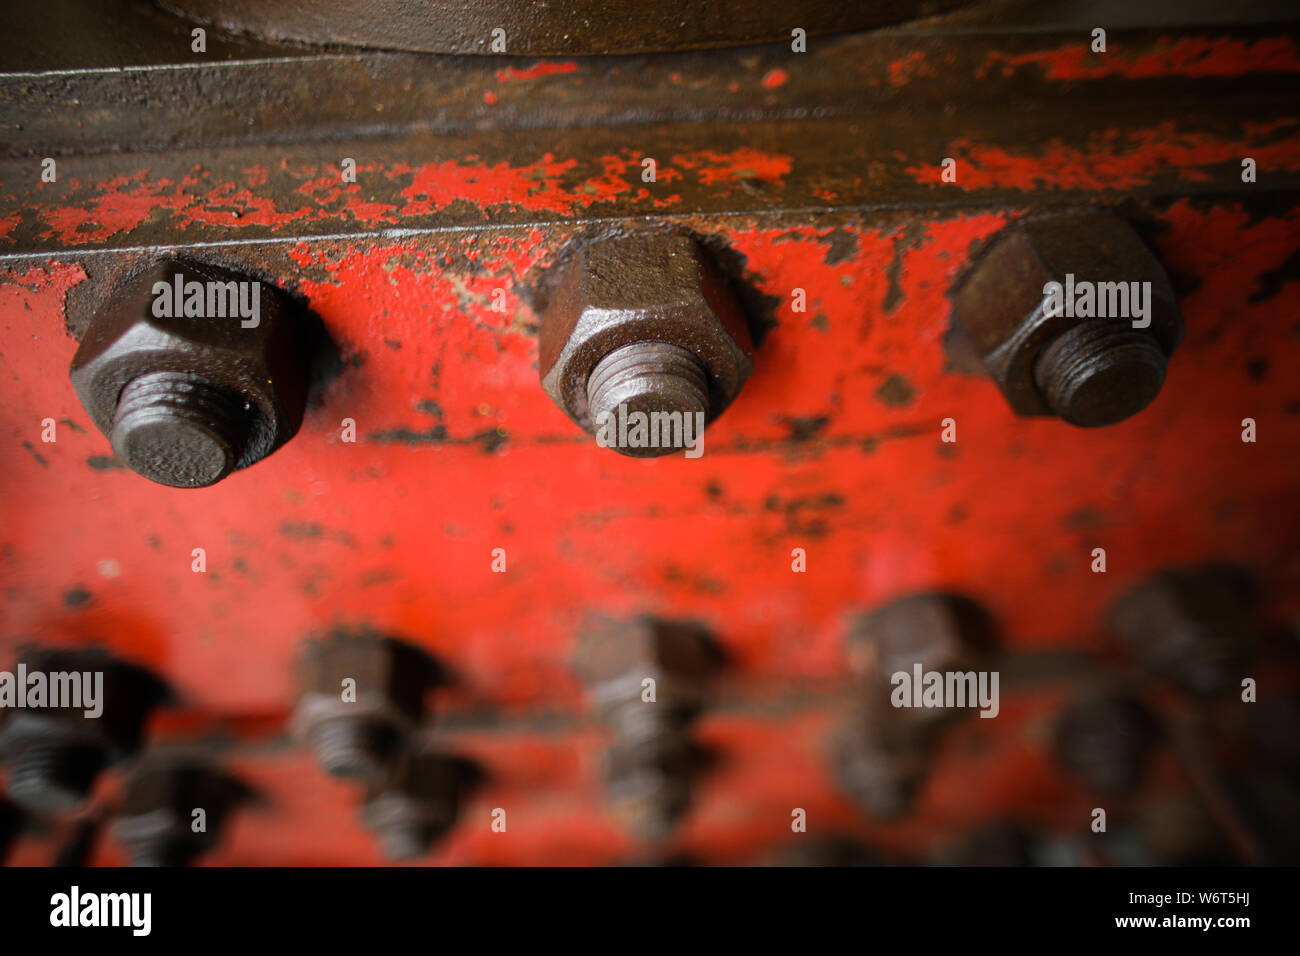 Shallow depth of field image with worn out heavy iron industrial equipment used in the oil and gas drilling industry (rusty bolts, nuts, pipes, levers Stock Photo